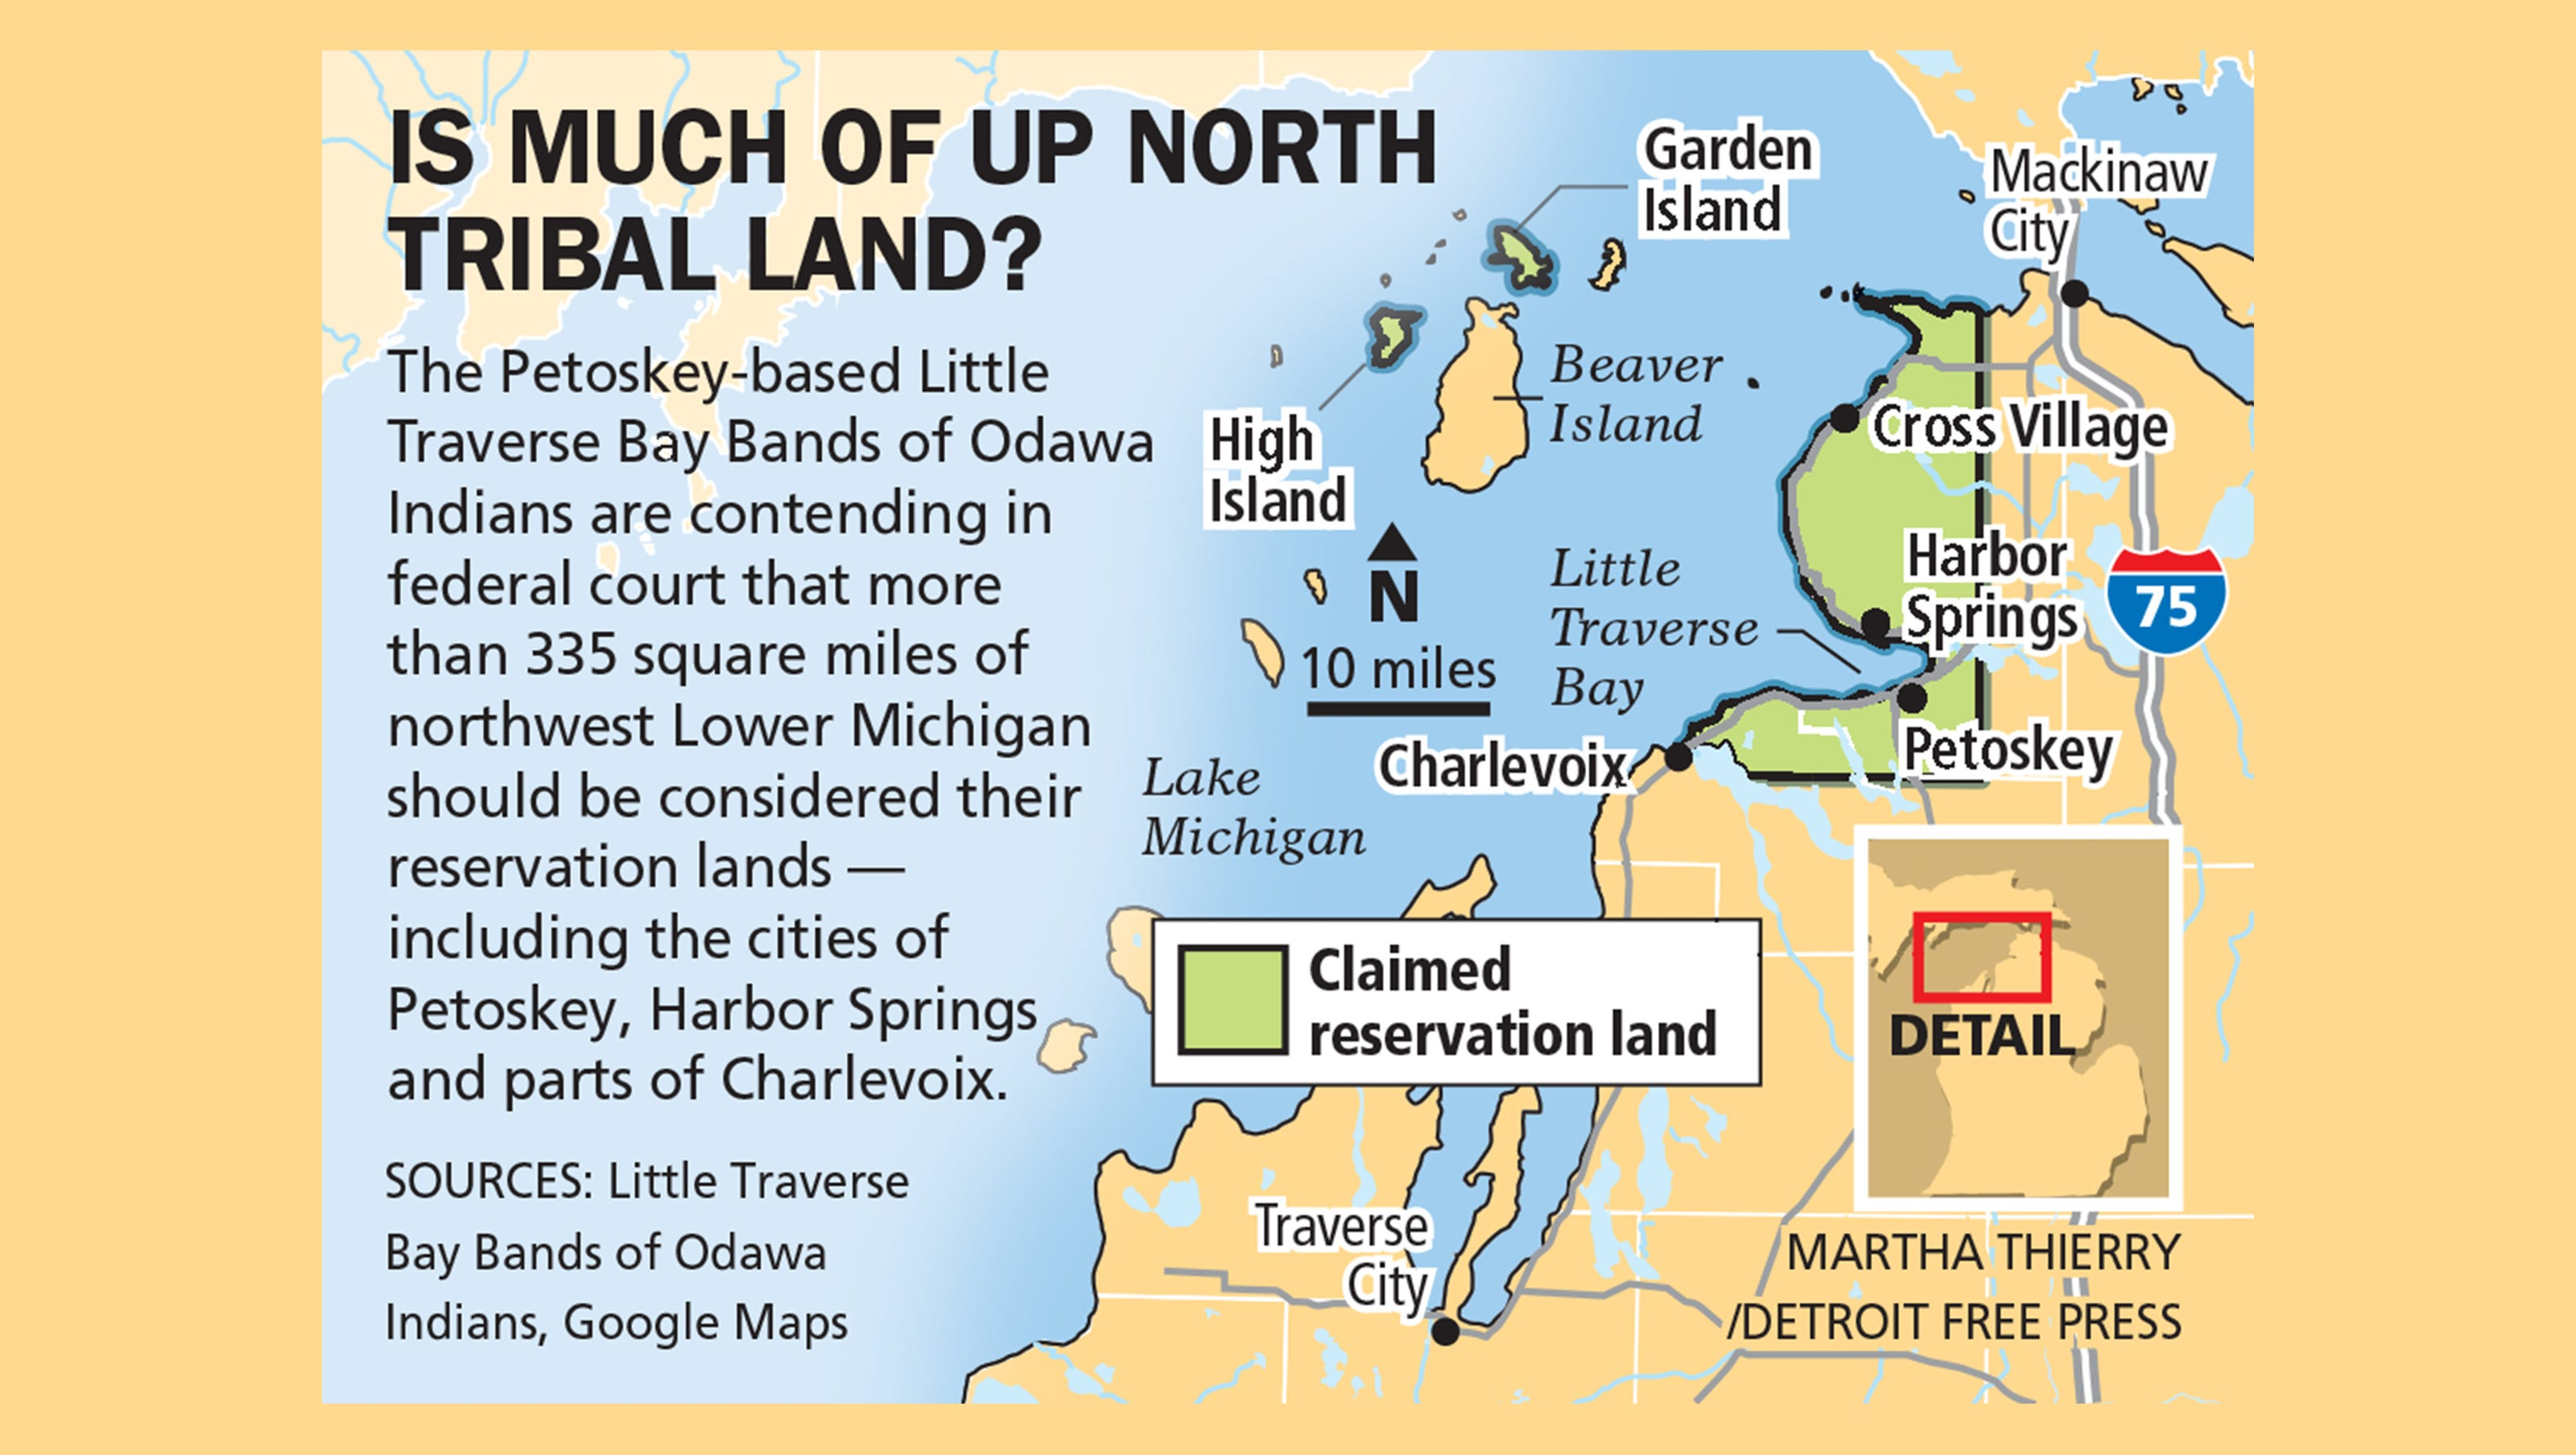 Indian Tribe Bids To Make Big Chunk Of Up North Michigan A Reservation